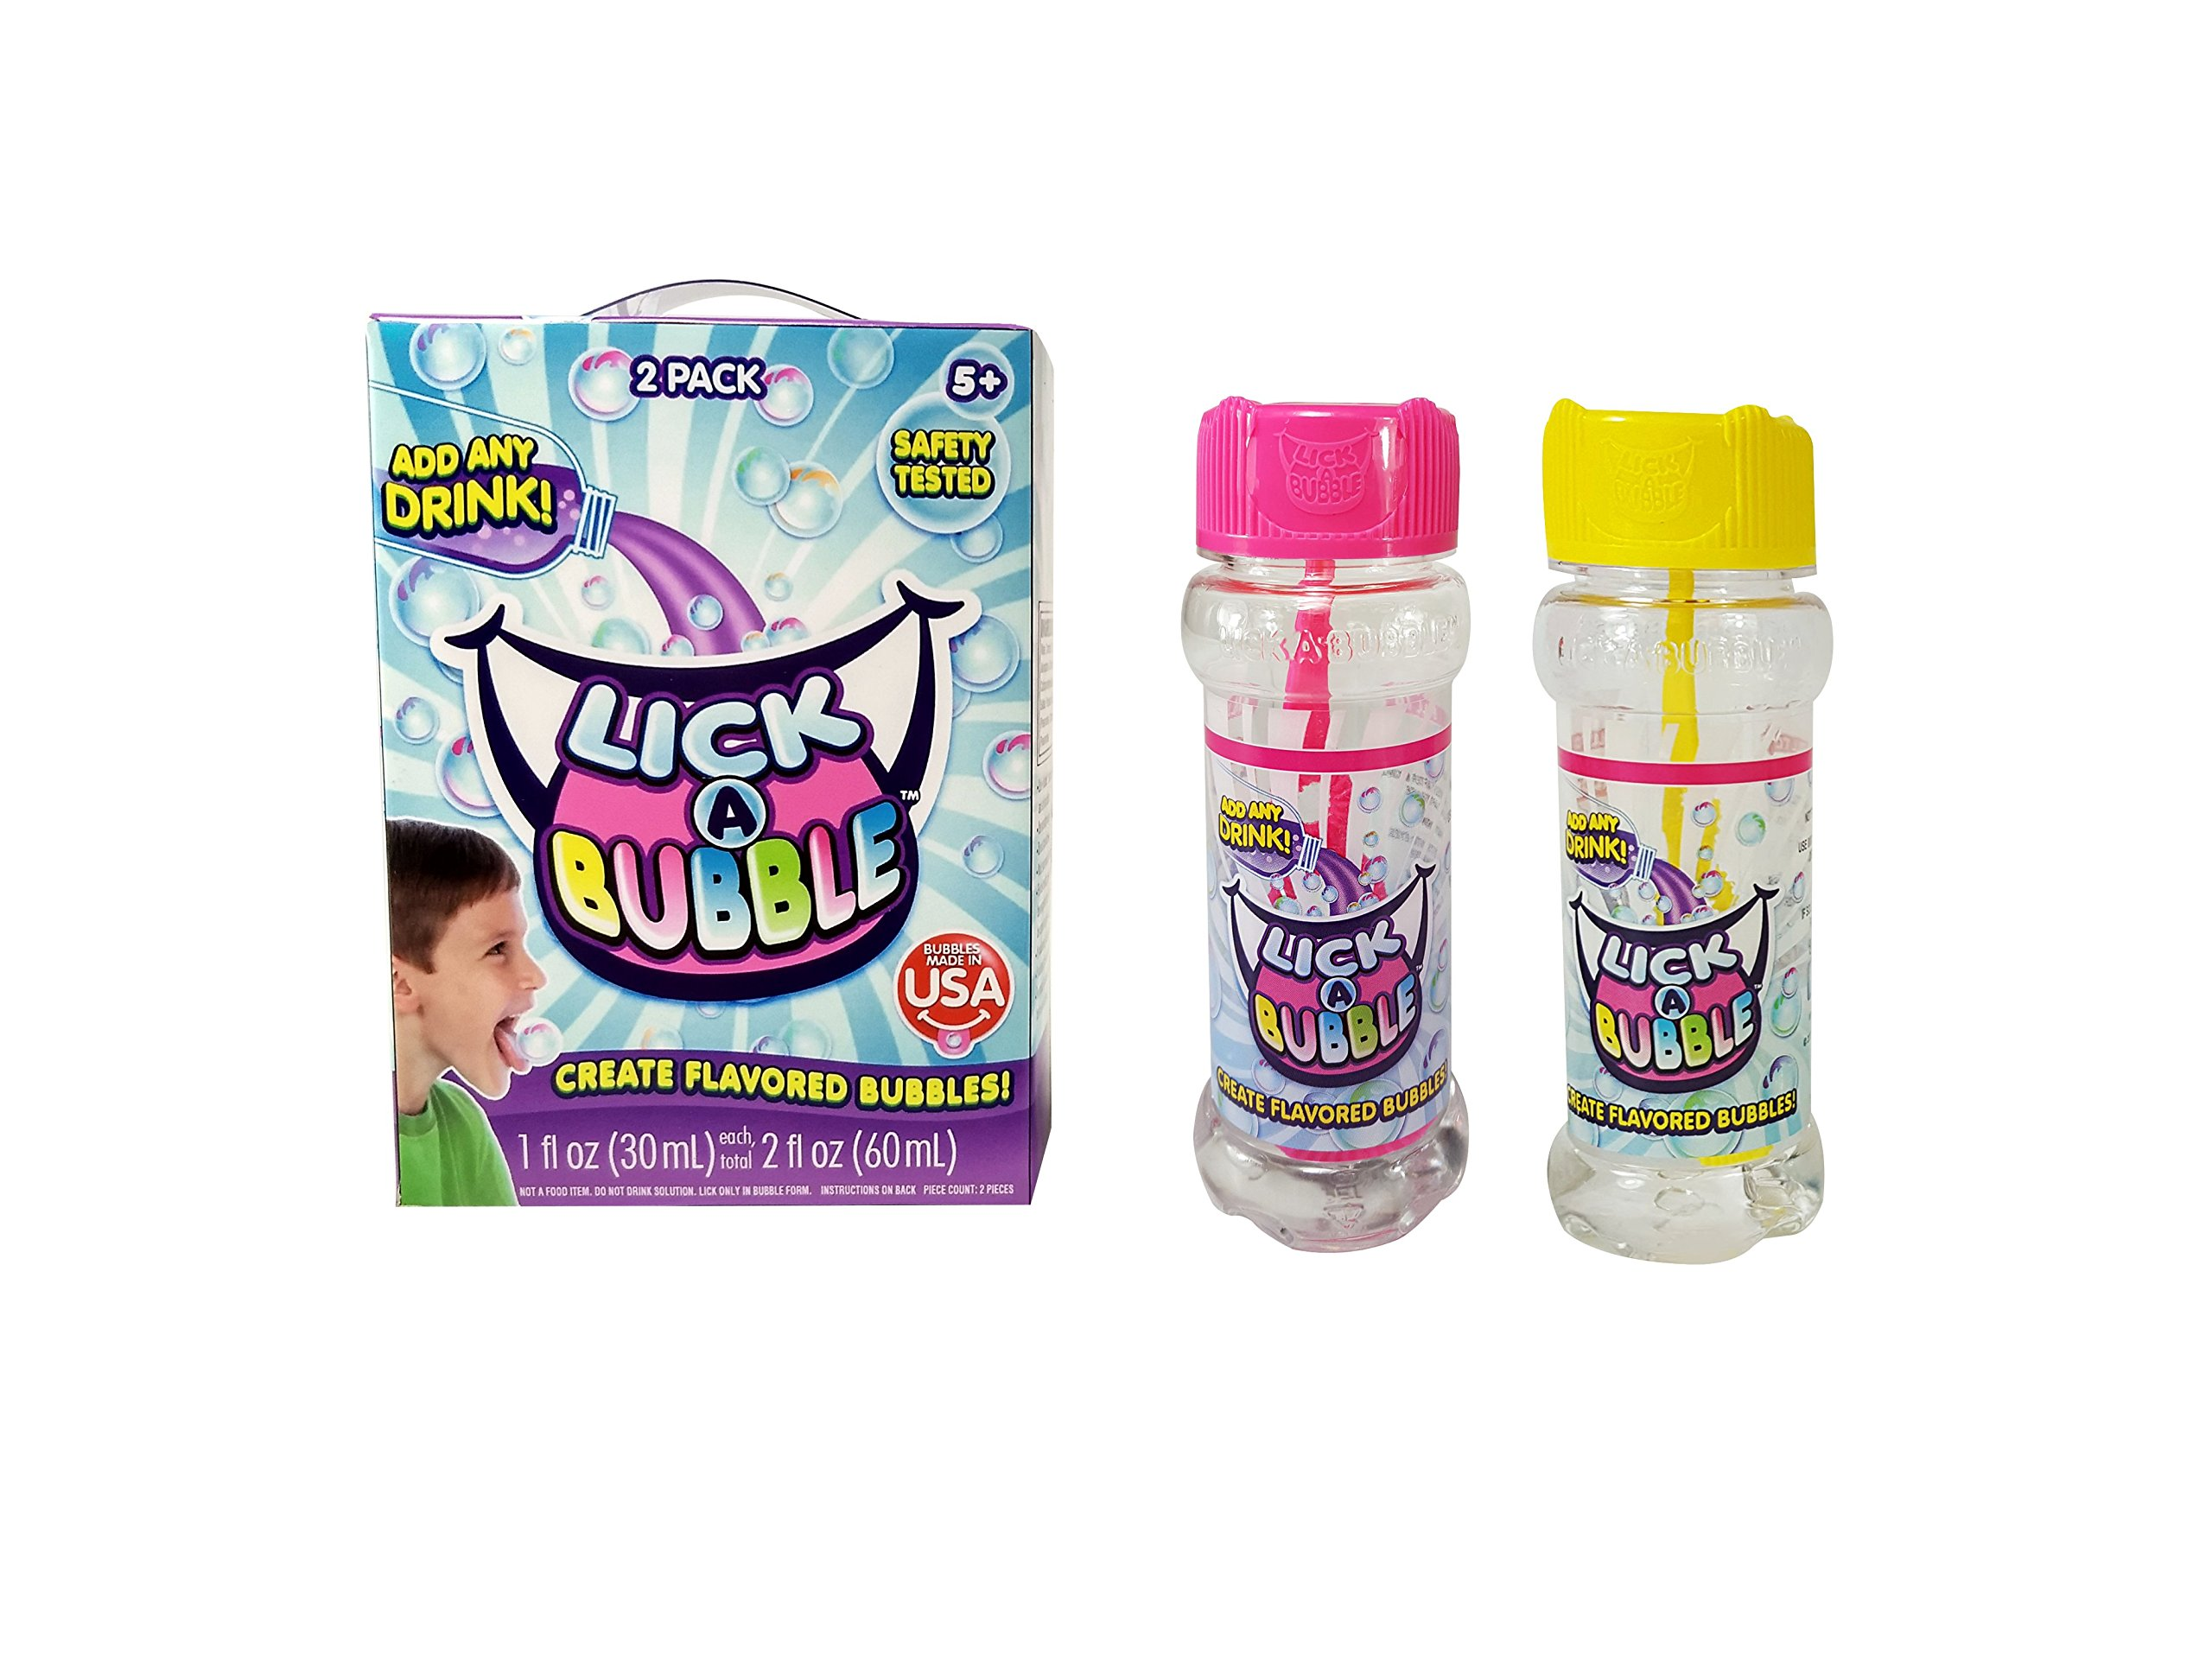 Lick-A-Bubble Create Flavored Bubbles, 2 Pack